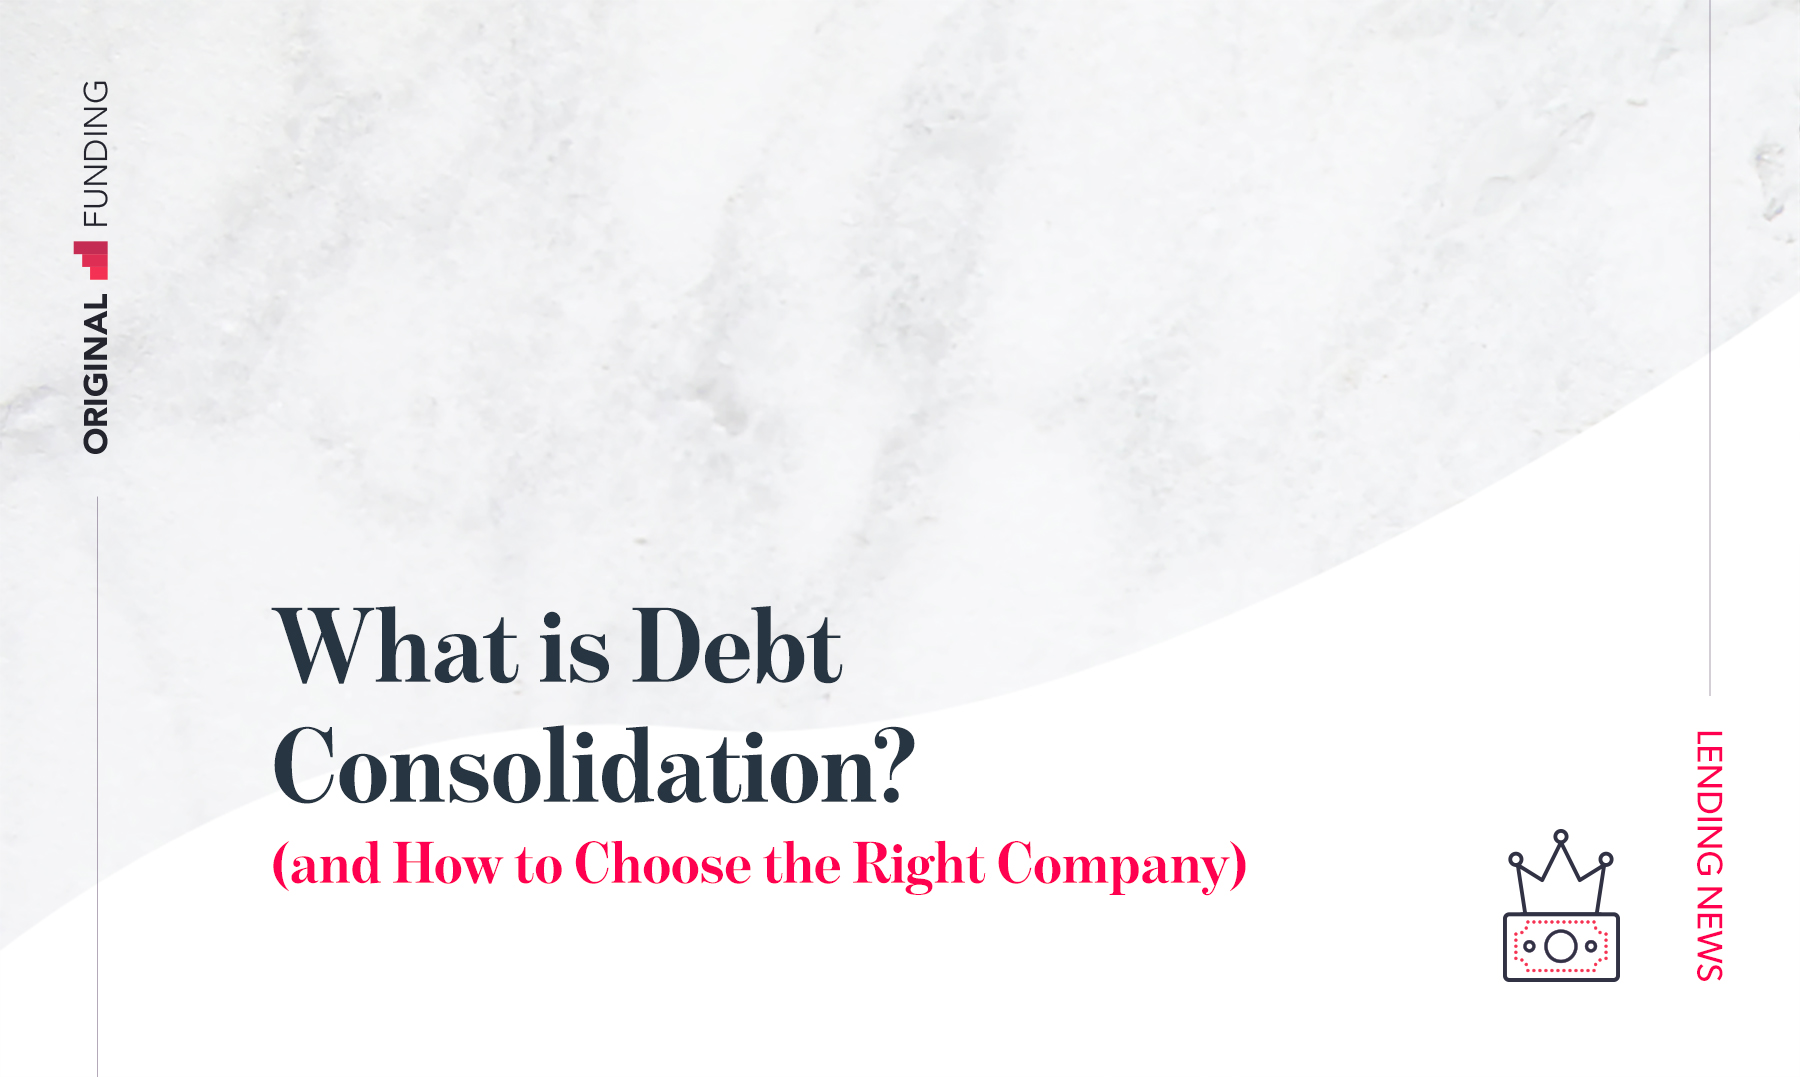 What is Debt Consolidation? (and How to Choose the Right Company)